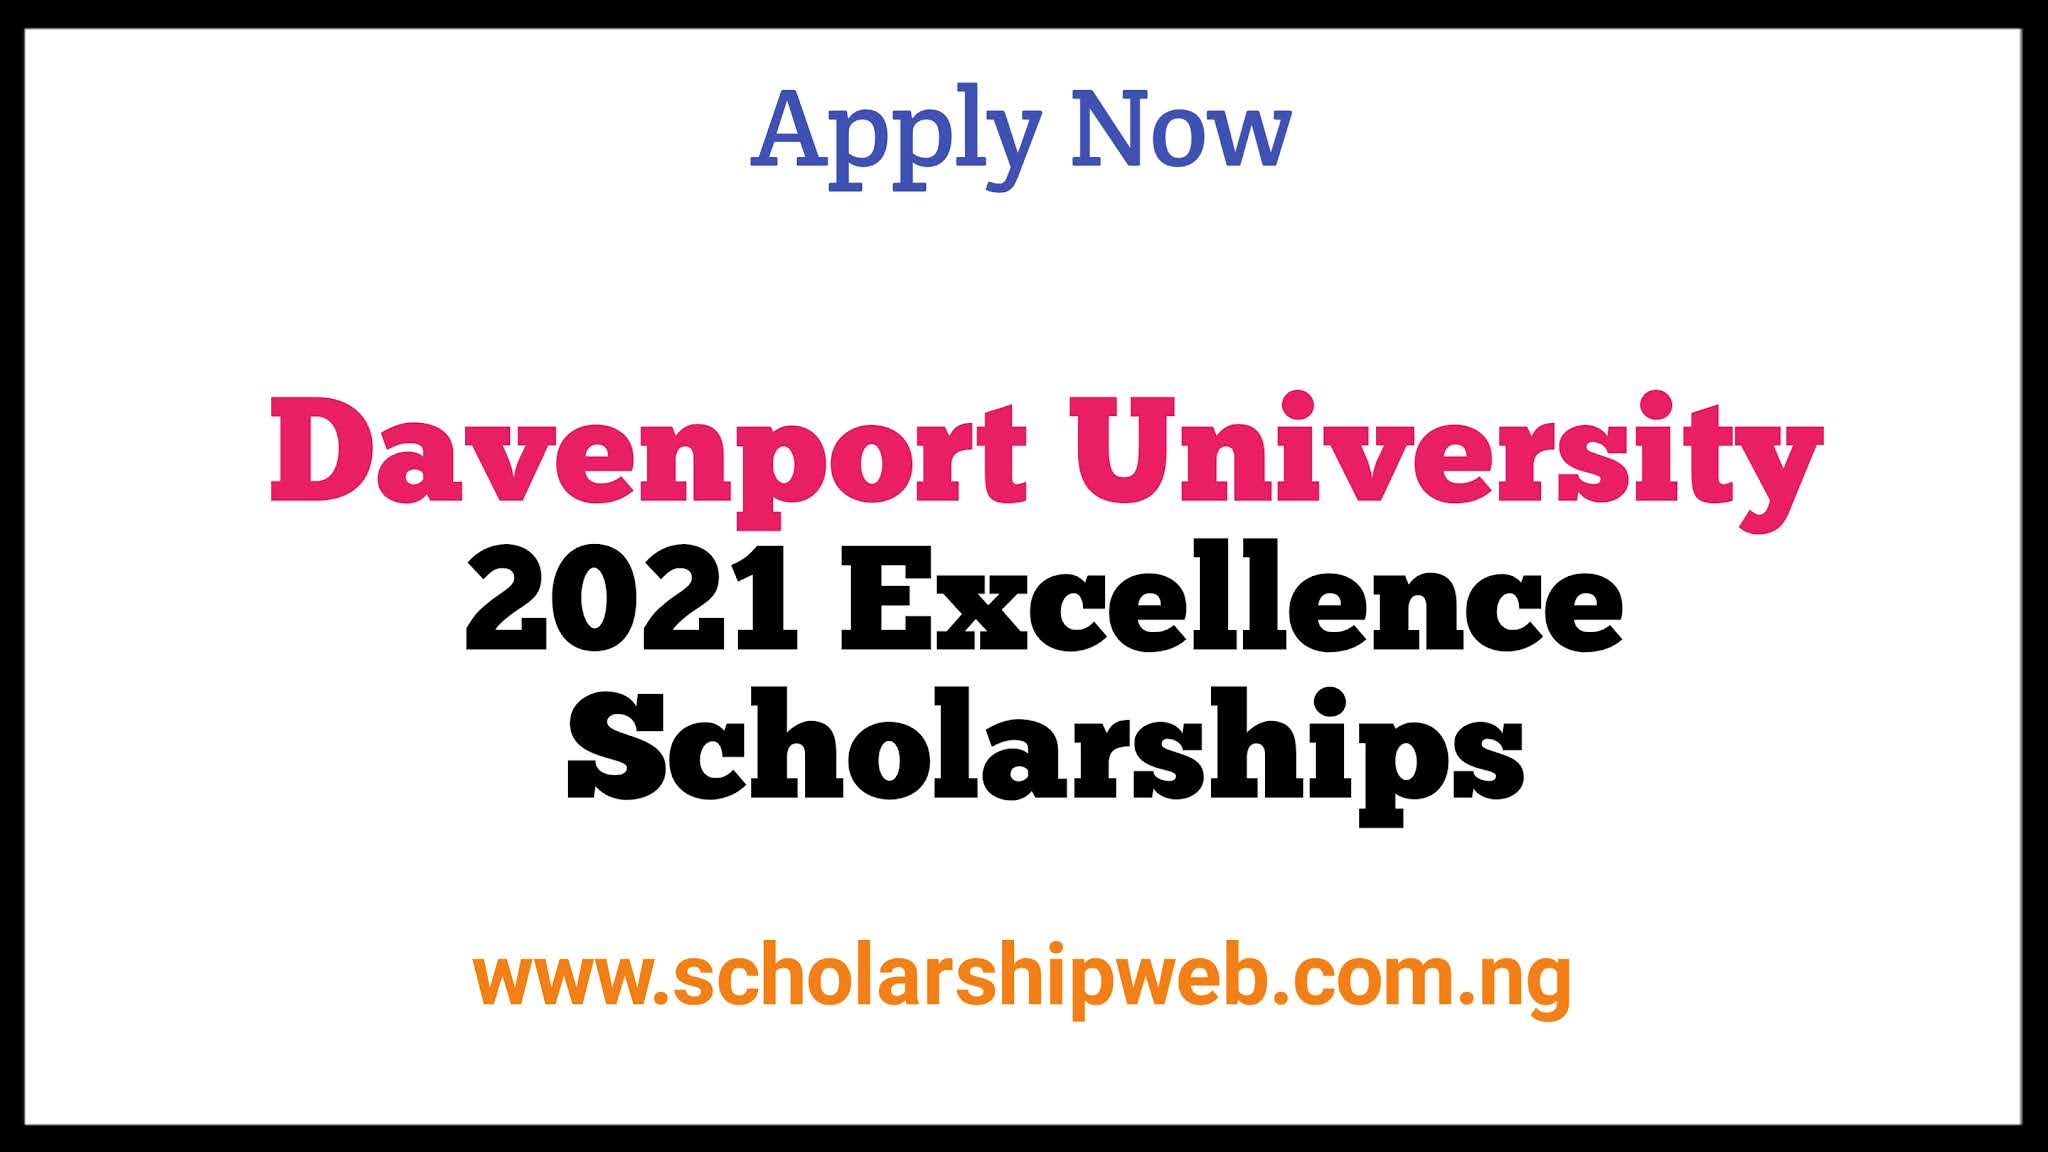 2021 Excellence Scholarships at Davenport University, USA